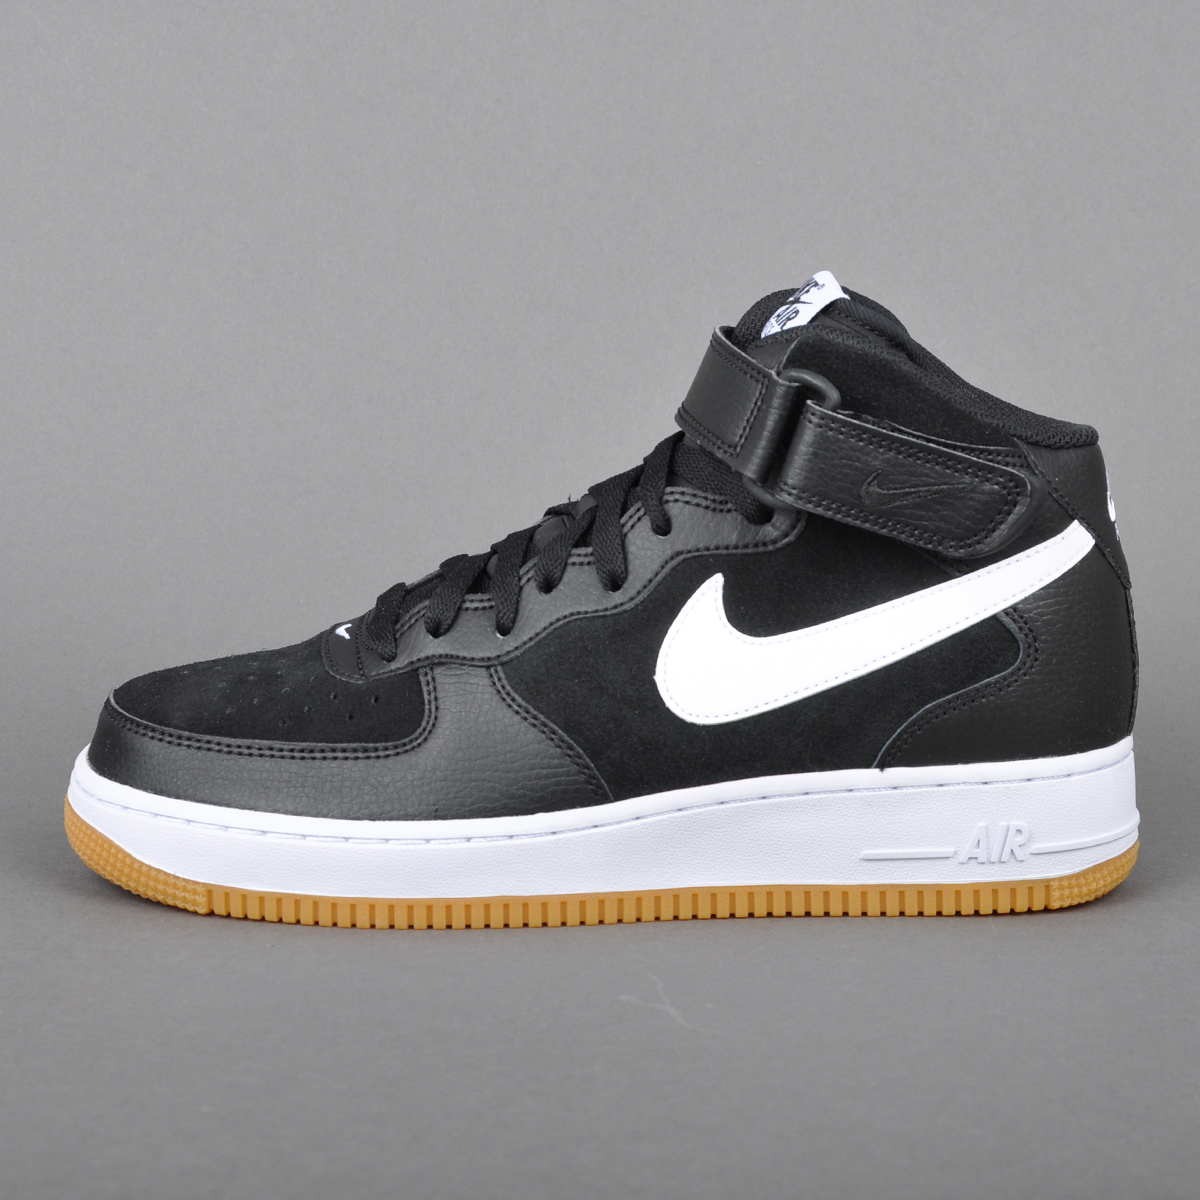 inexpensive nike air force 1 black white gum 6bd67 098b9